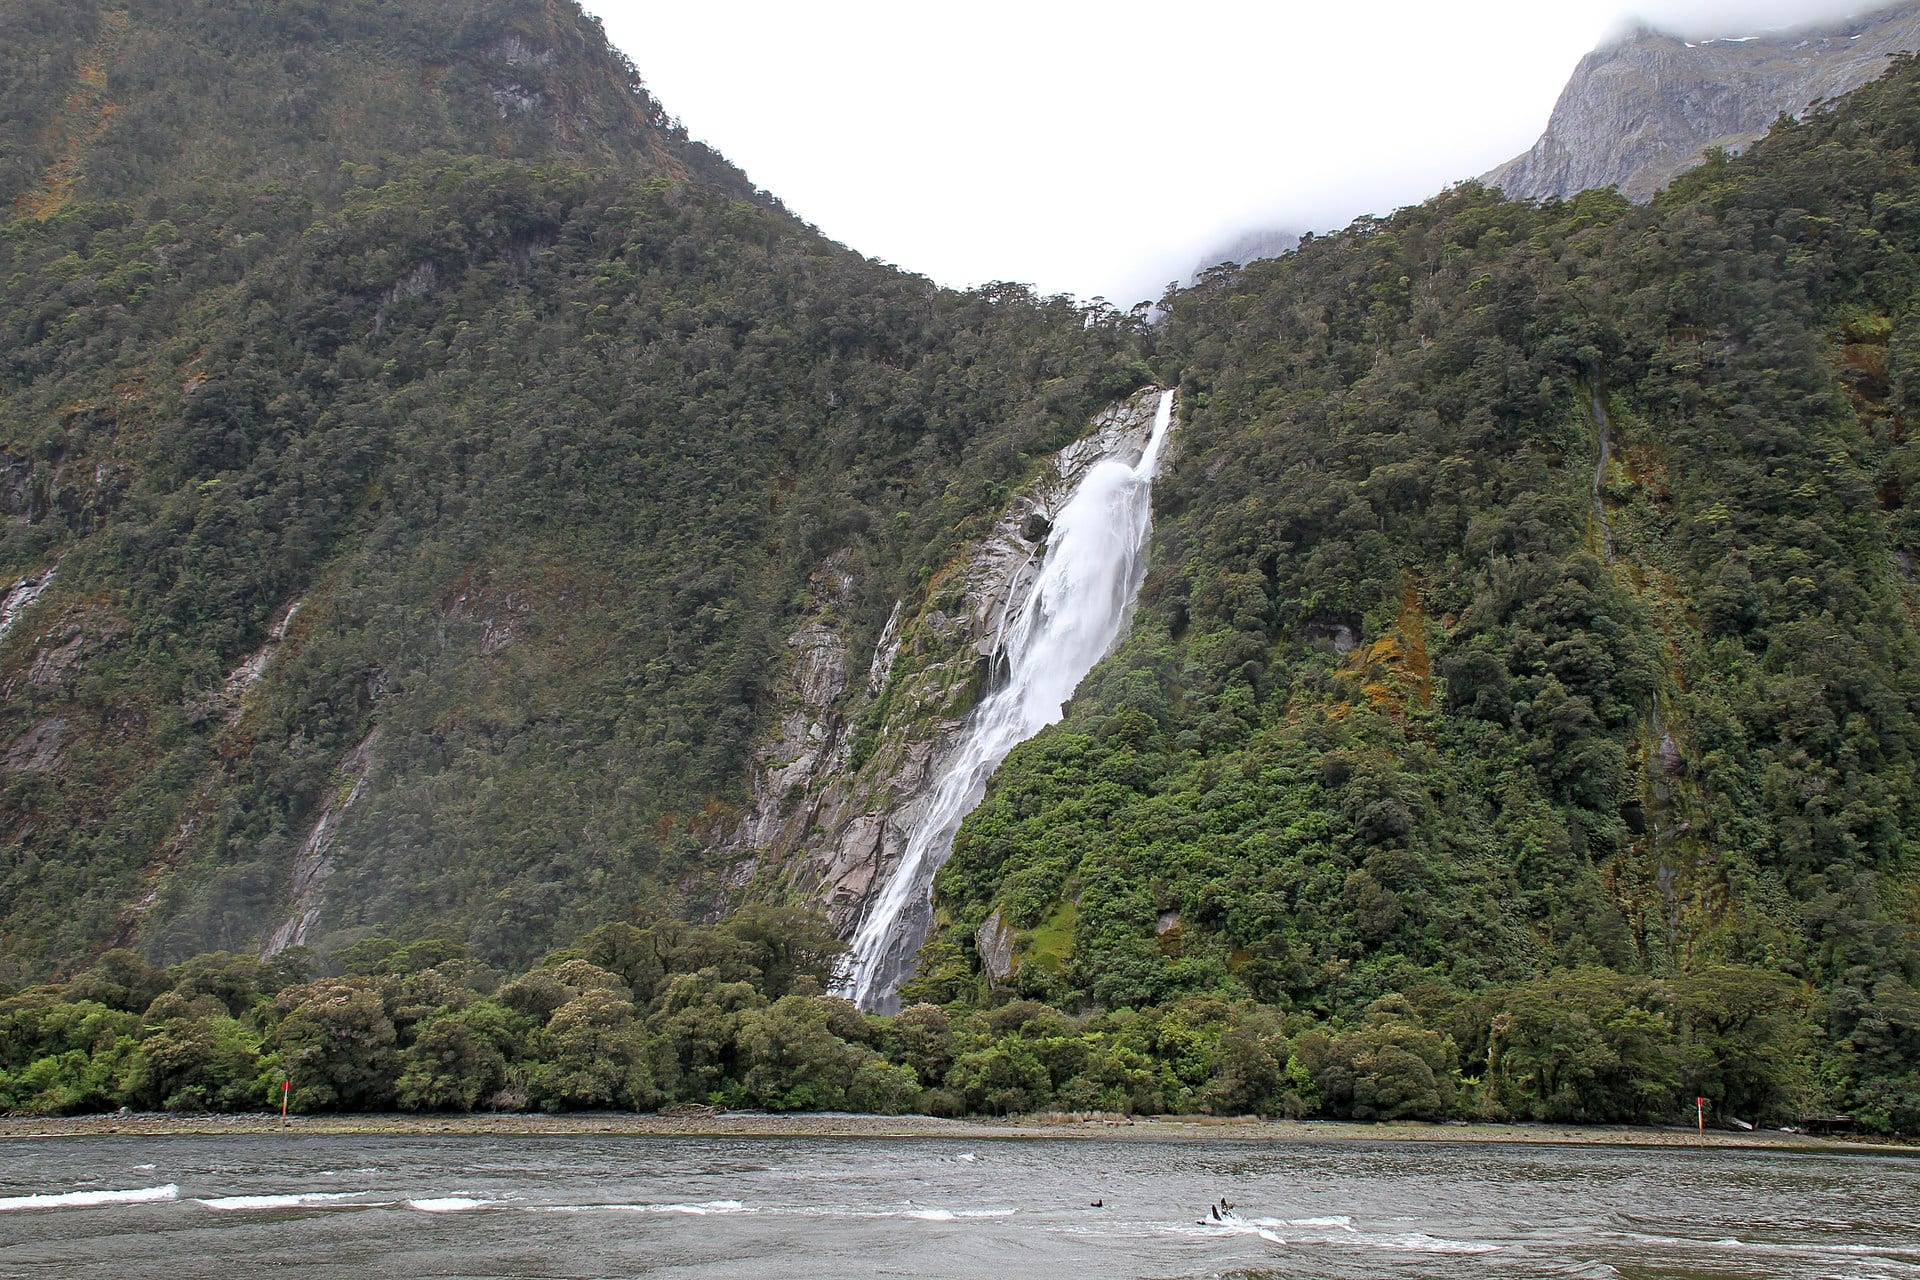 //commons.wikimedia.org/wiki/Category:Fiordland_National_Park#/media/File:Milford_Sound_Waterfall_5_(30822786813).jpg